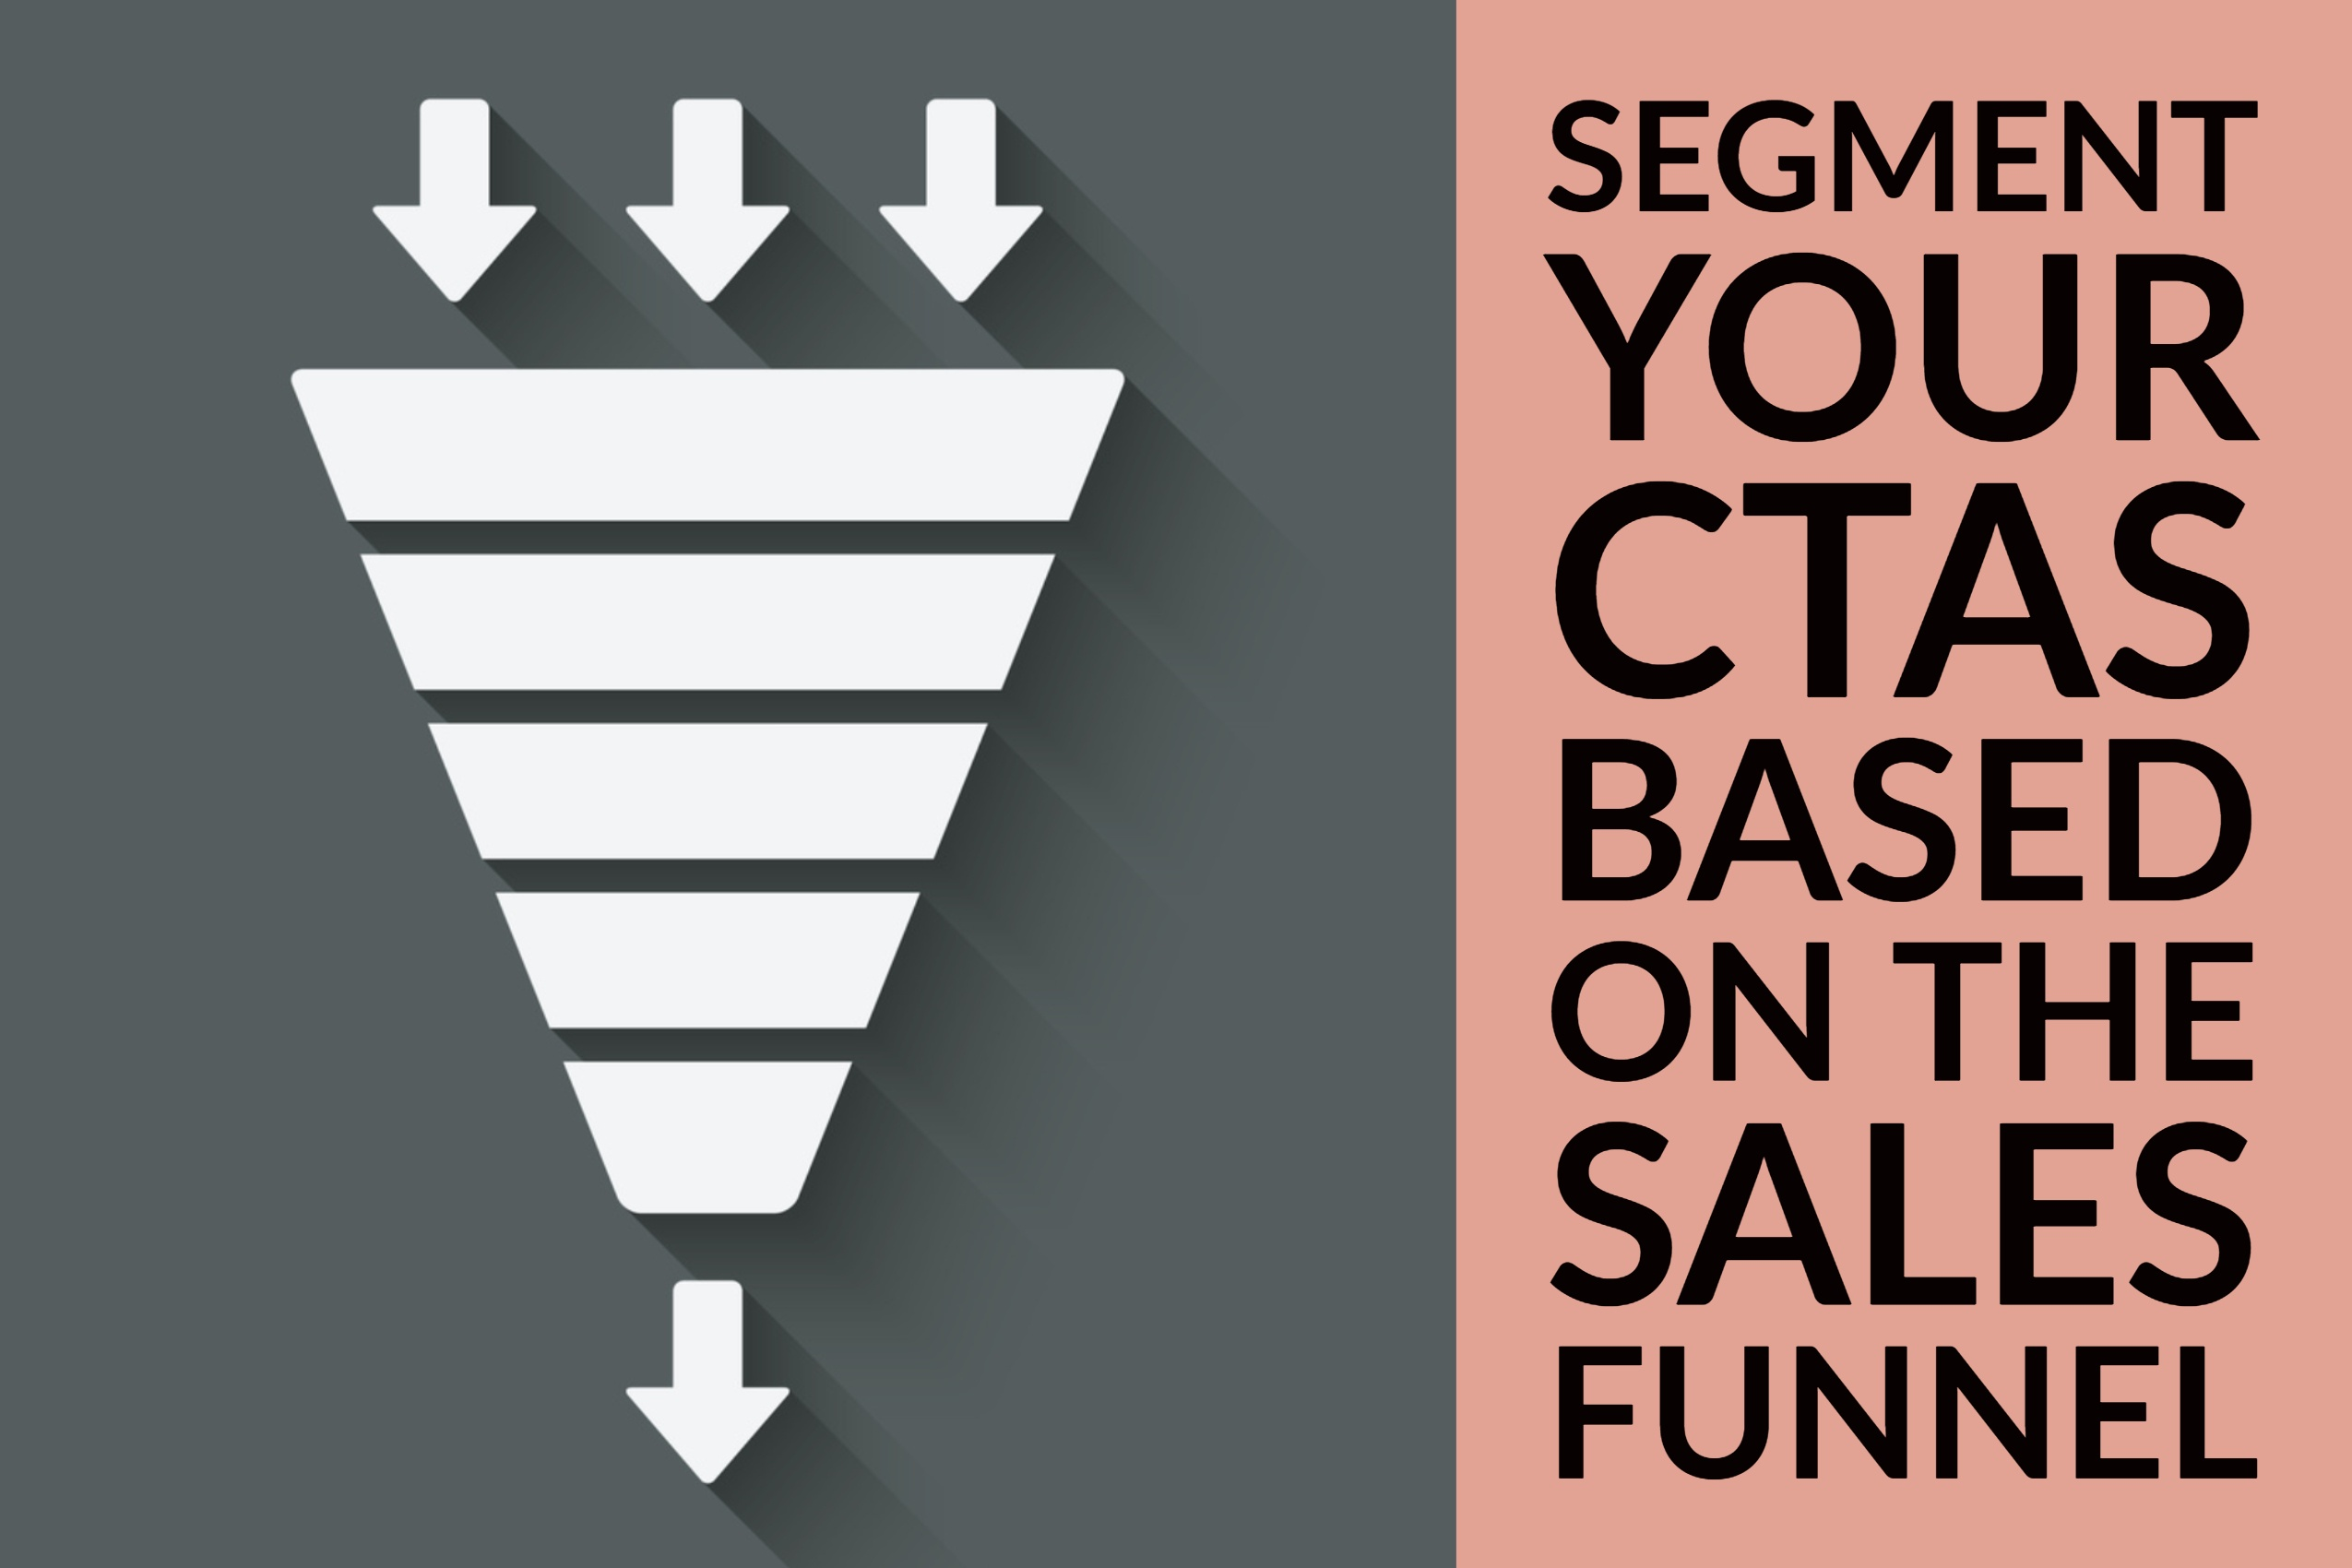 Segment Your CTAs Based On The Sales Funnel